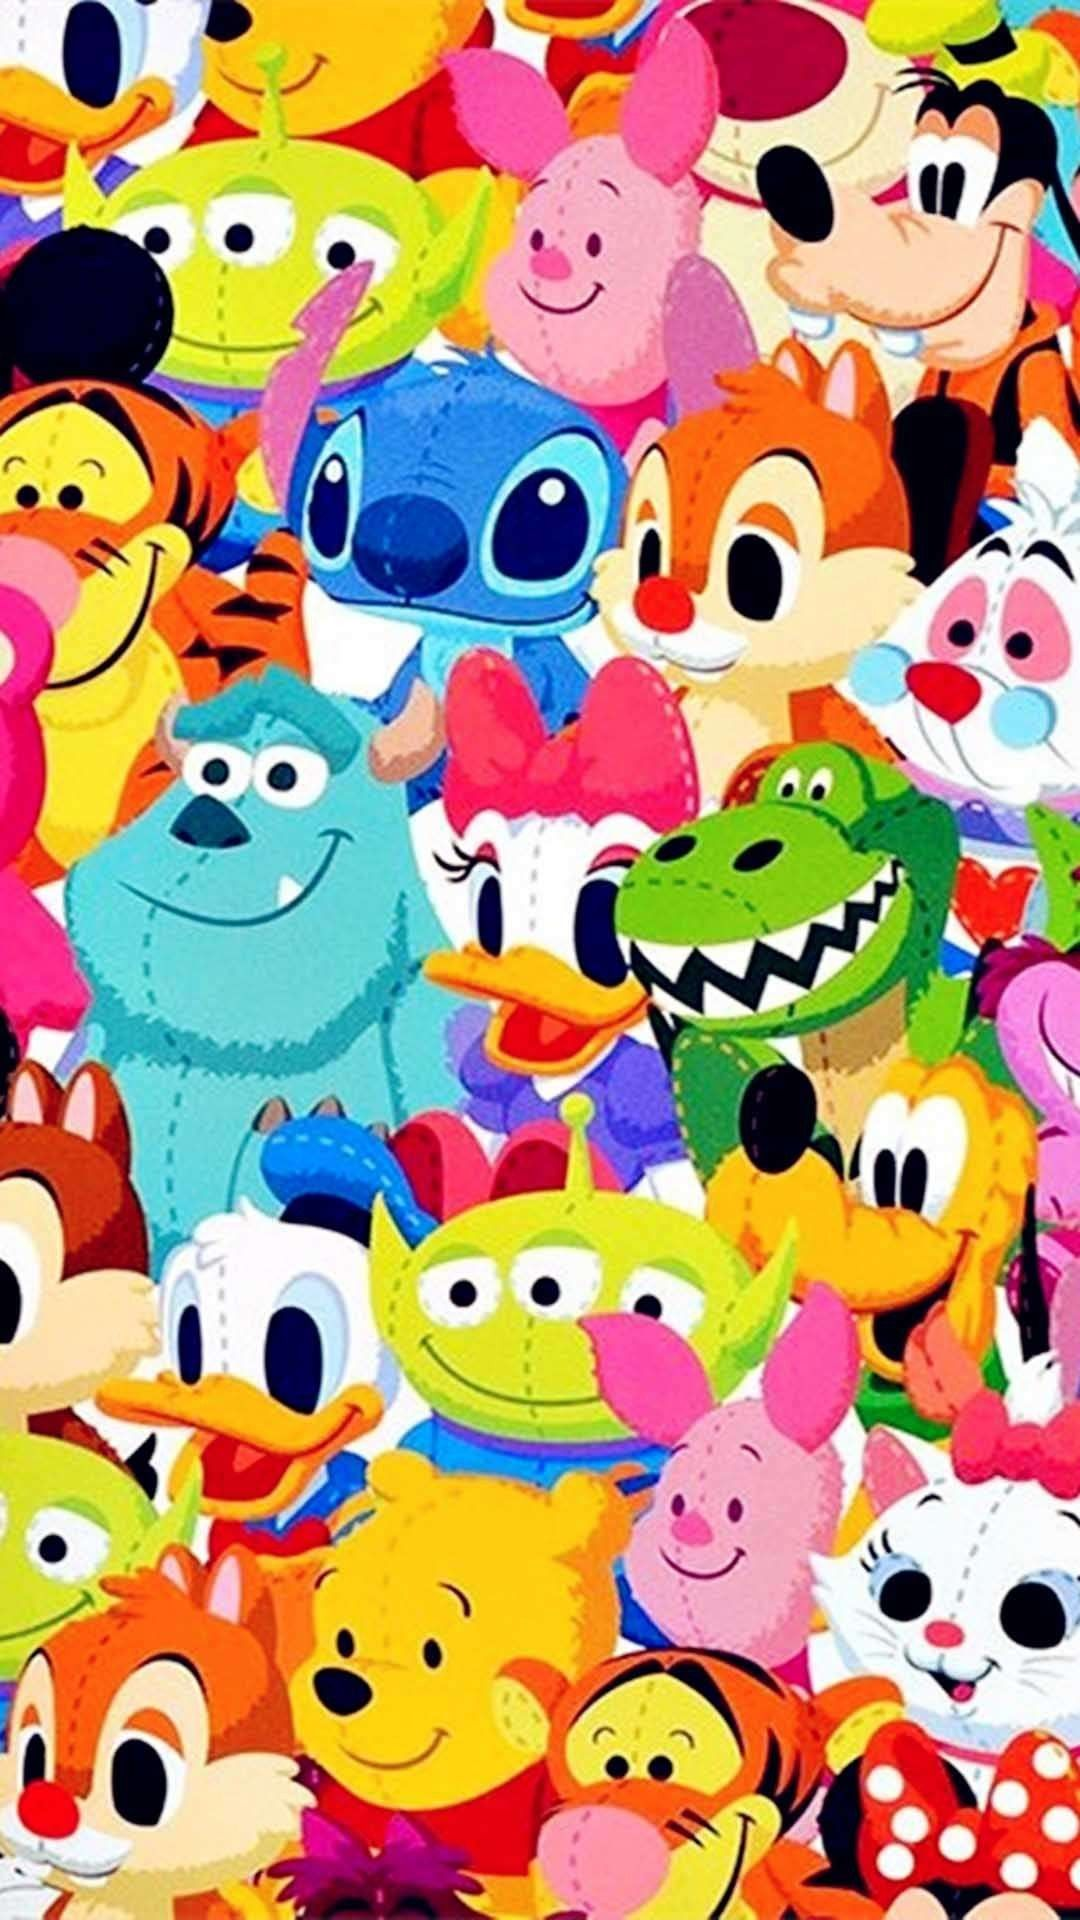 Pin By Aubrey On Phone Wallpapers Disney Characters Wallpaper Wallpaper Iphone Disney Disney Wallpaper